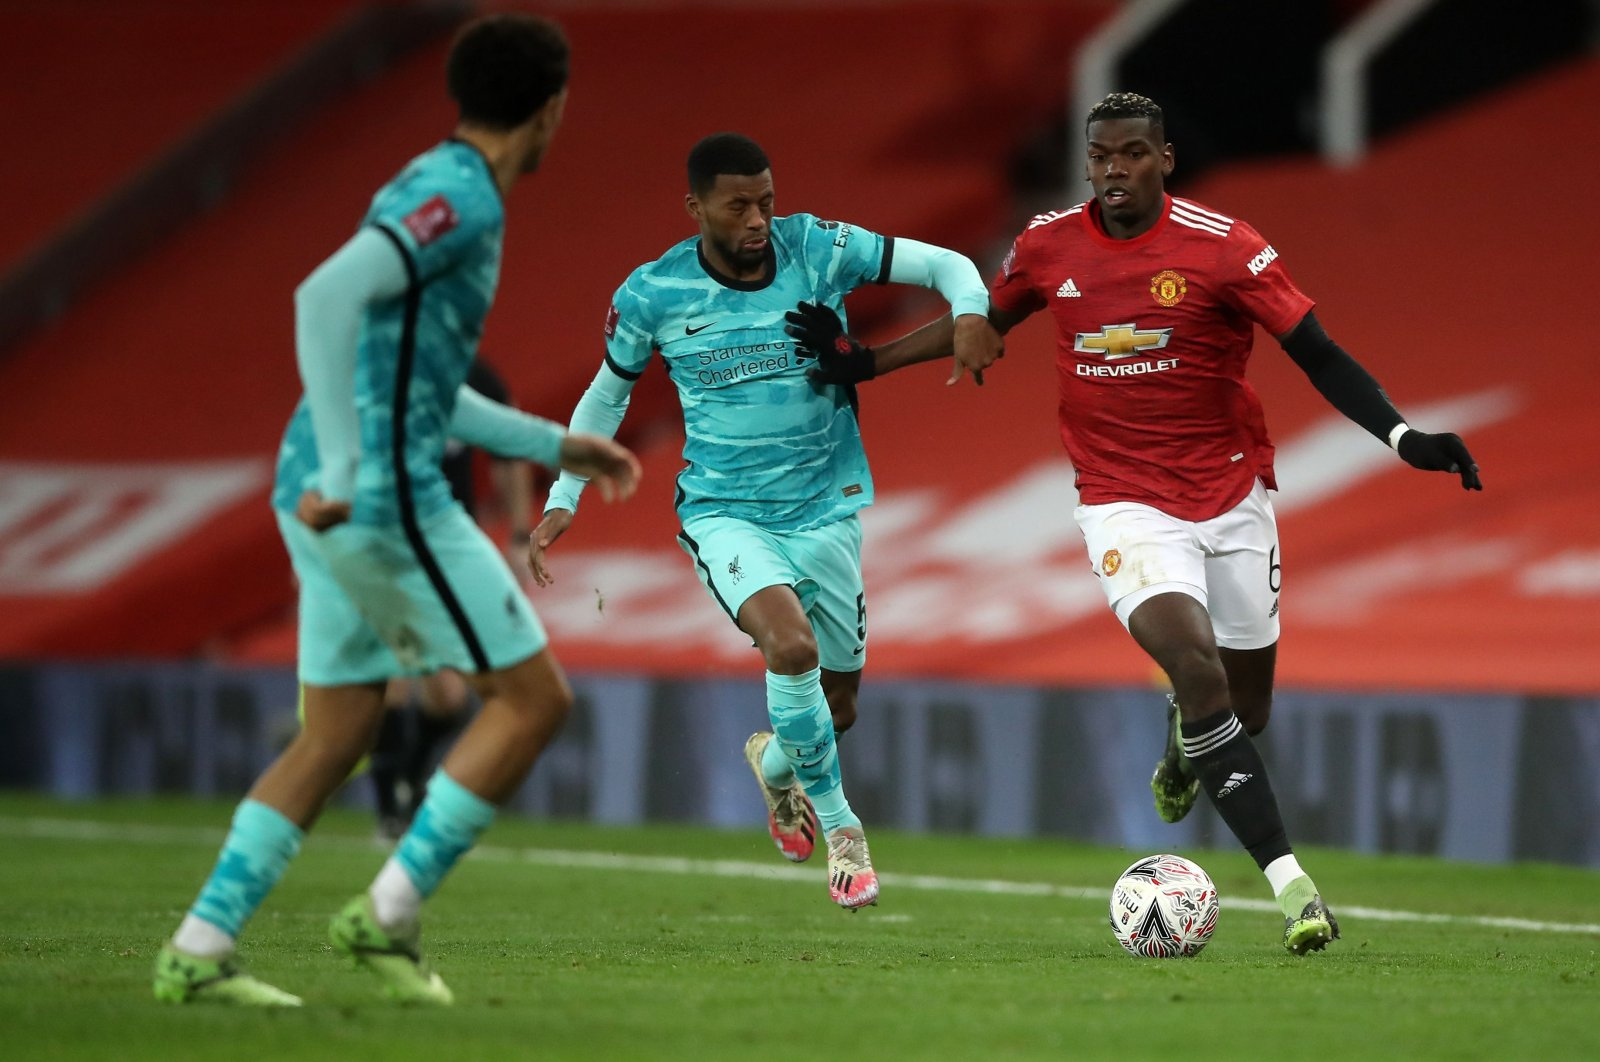 Manchester United's Paul Pogba (R) vies for the ball against Liverpool's Georginio Wijnaldum (C) during the English FA Cup fourth round match, at the Old Trafford, Manchester, England, Jan. 24, 2021.